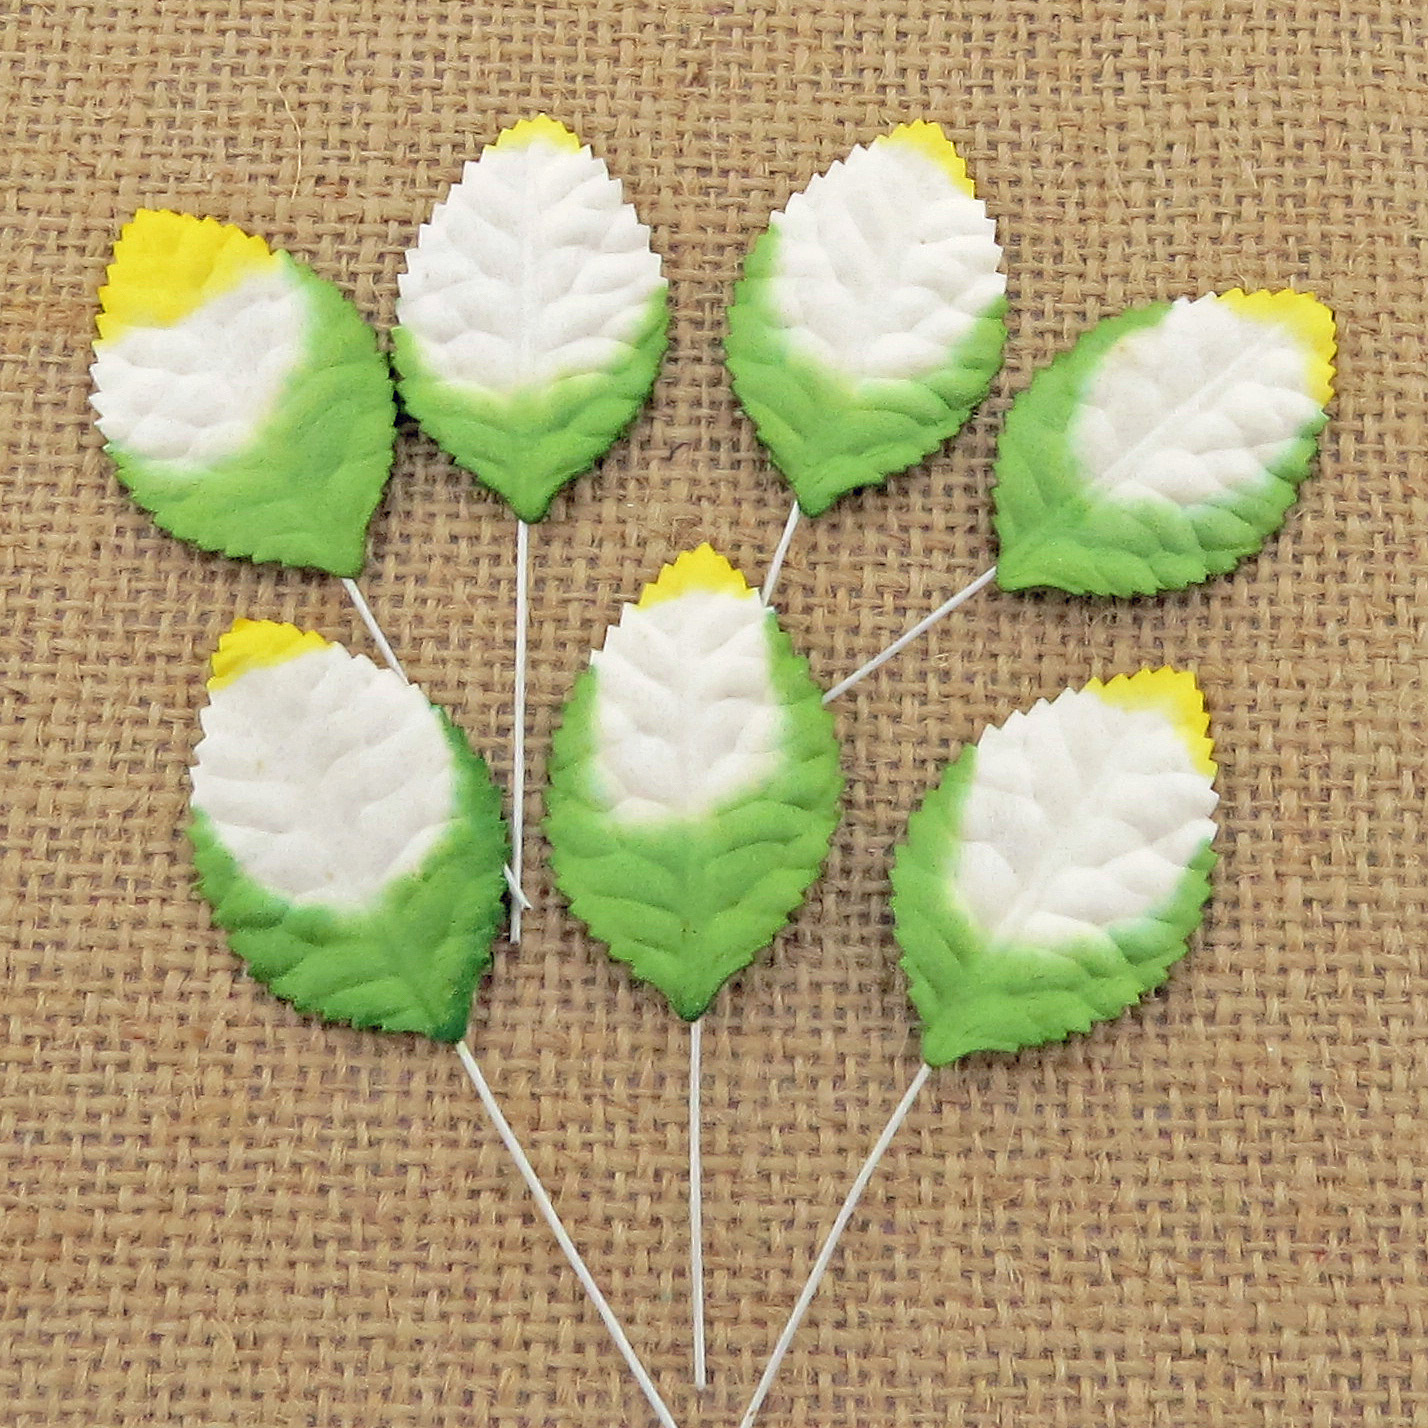 100 2-tone green/white/yellow Mulberry Paper Leaves - 35mm